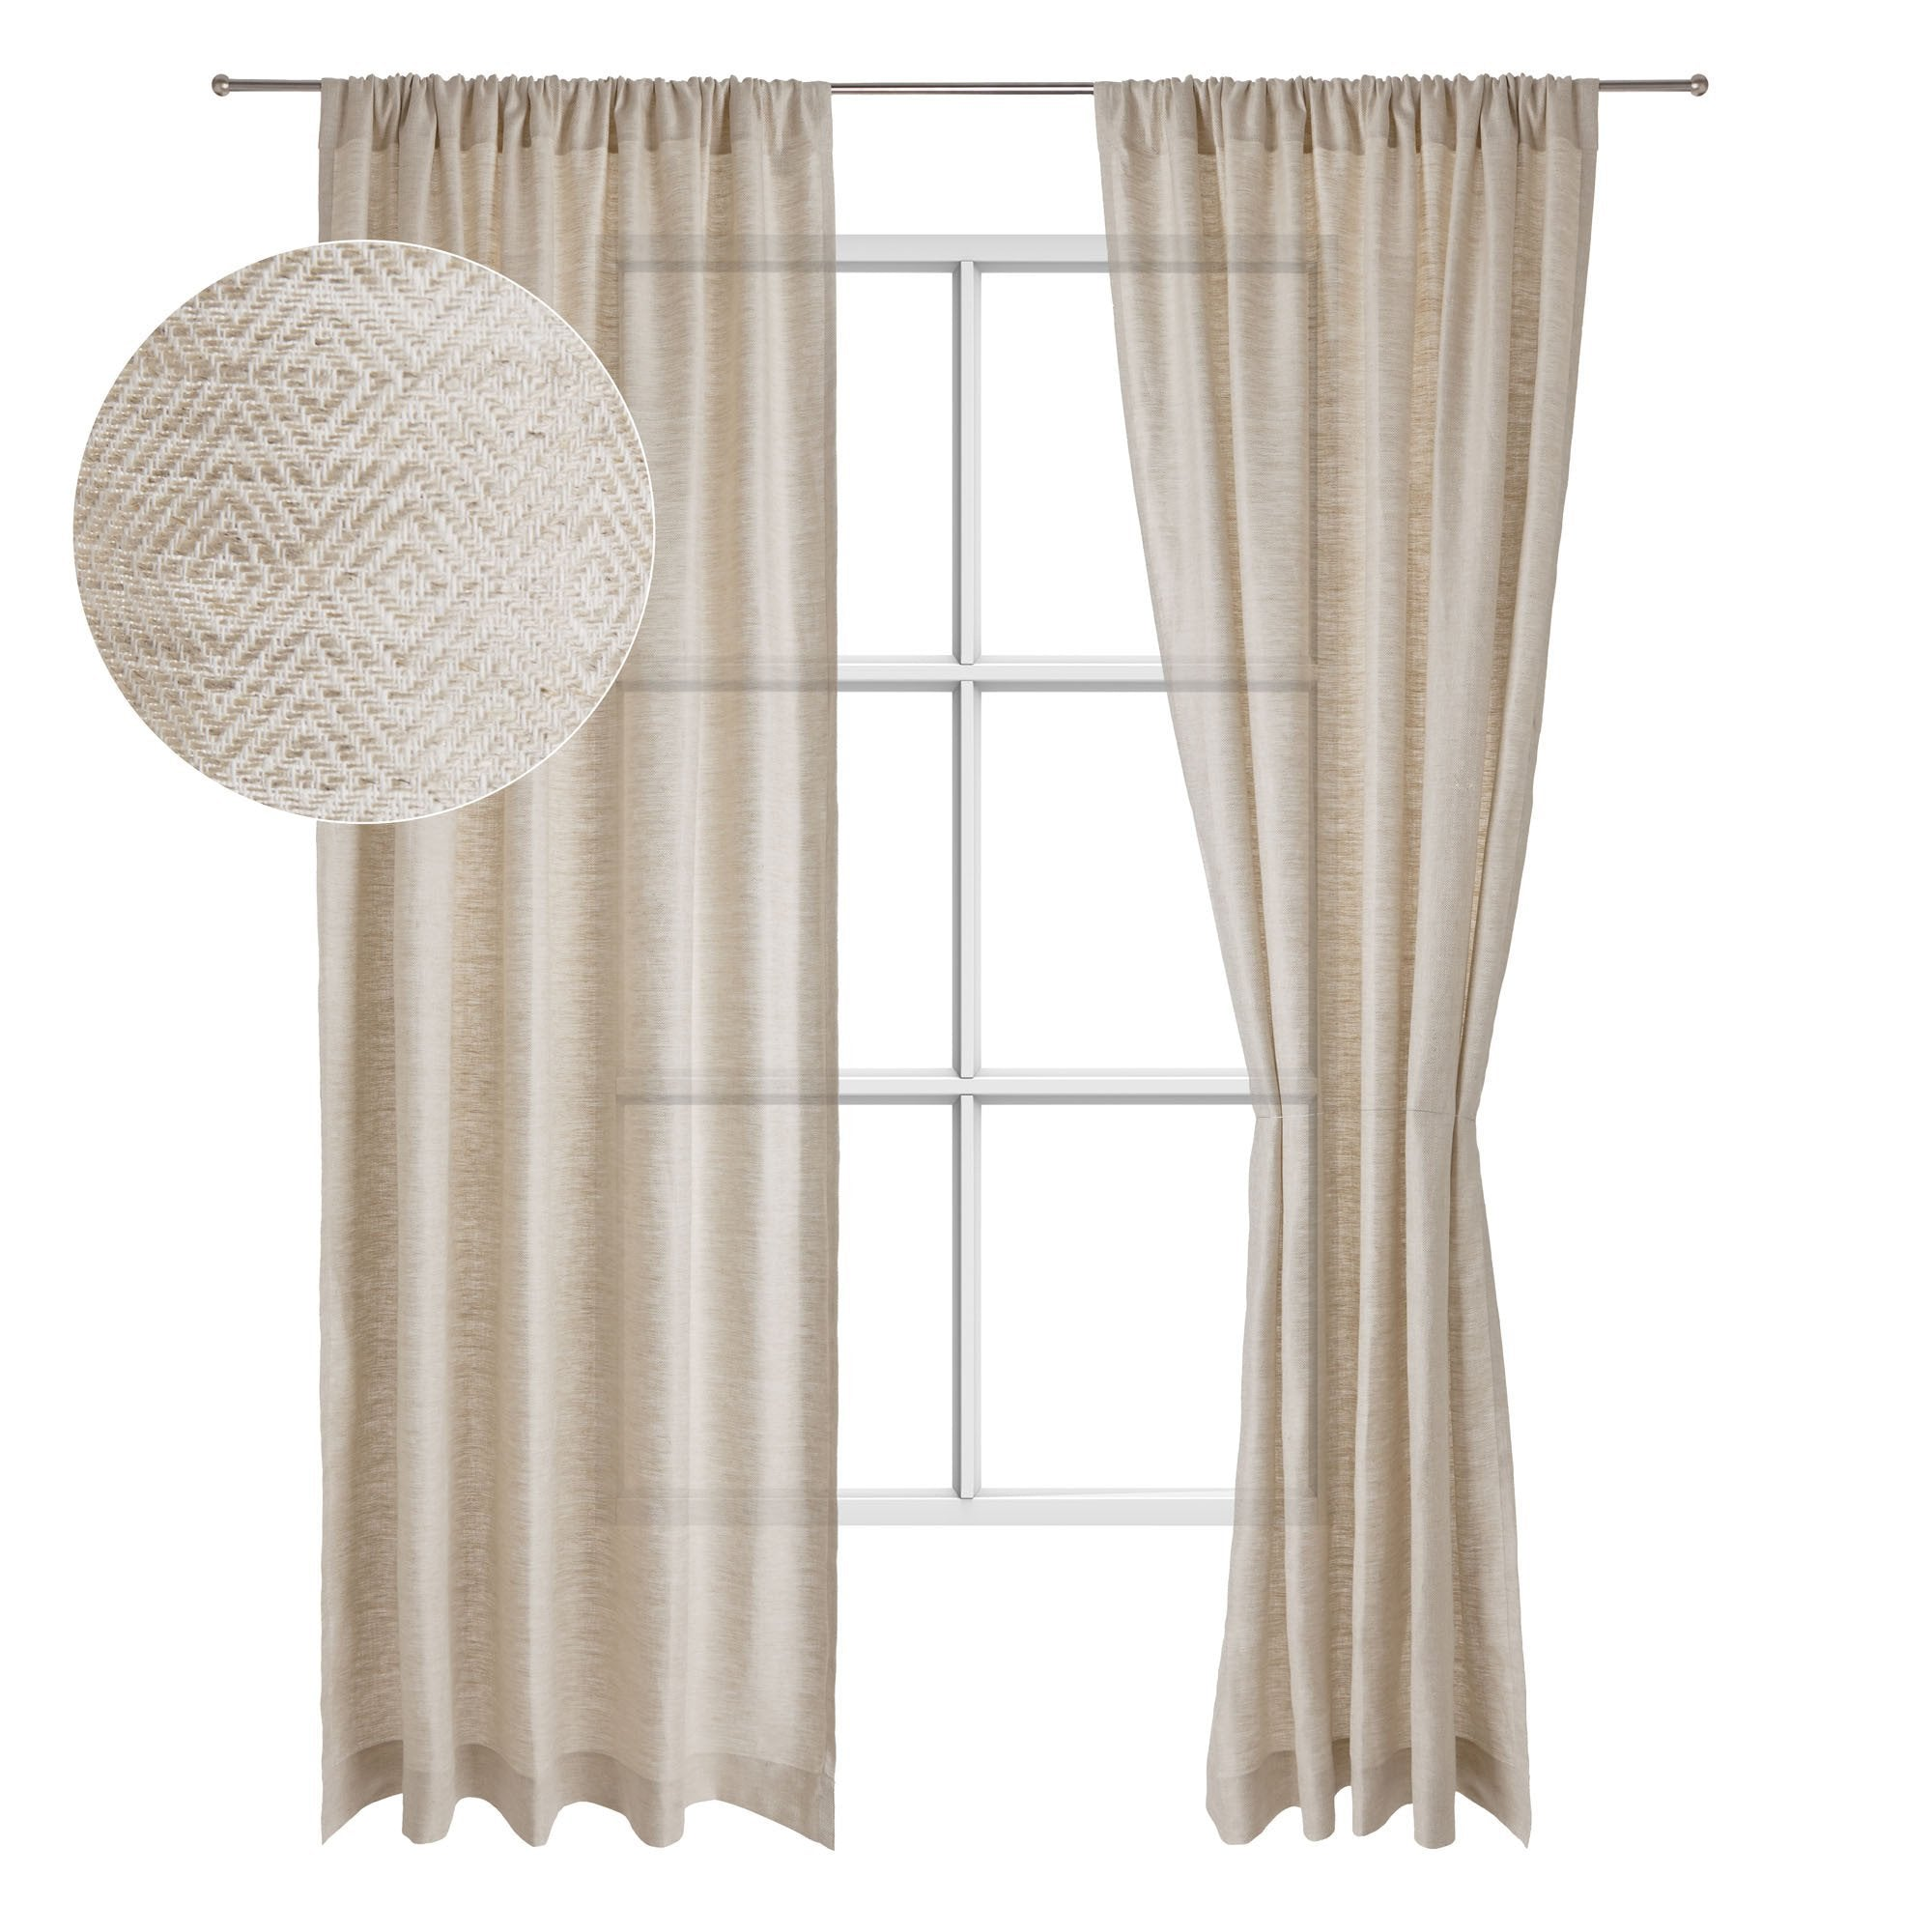 Zarasai curtain, natural & white, 100% linen